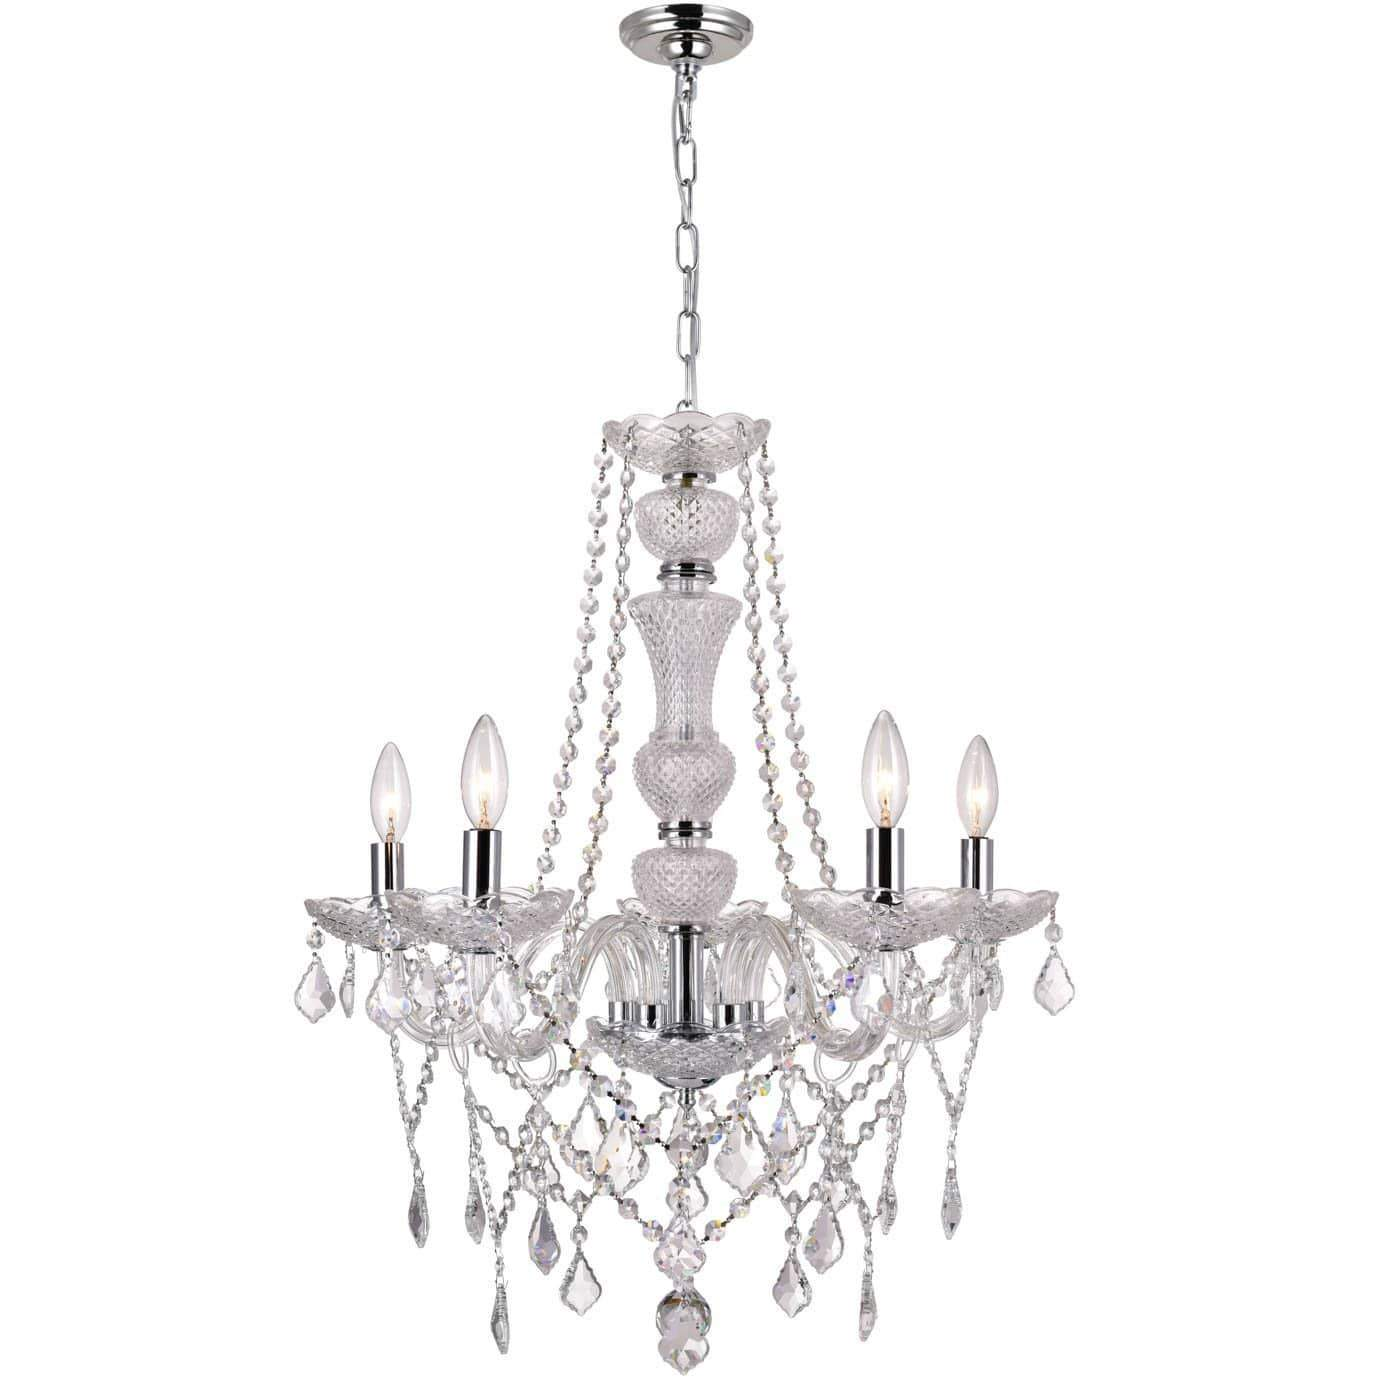 CWI Lighting Chandeliers Chrome / K9 Clear Princeton 6 Light Up Chandelier with Chrome finish by CWI Lighting 8268P22C-6-A